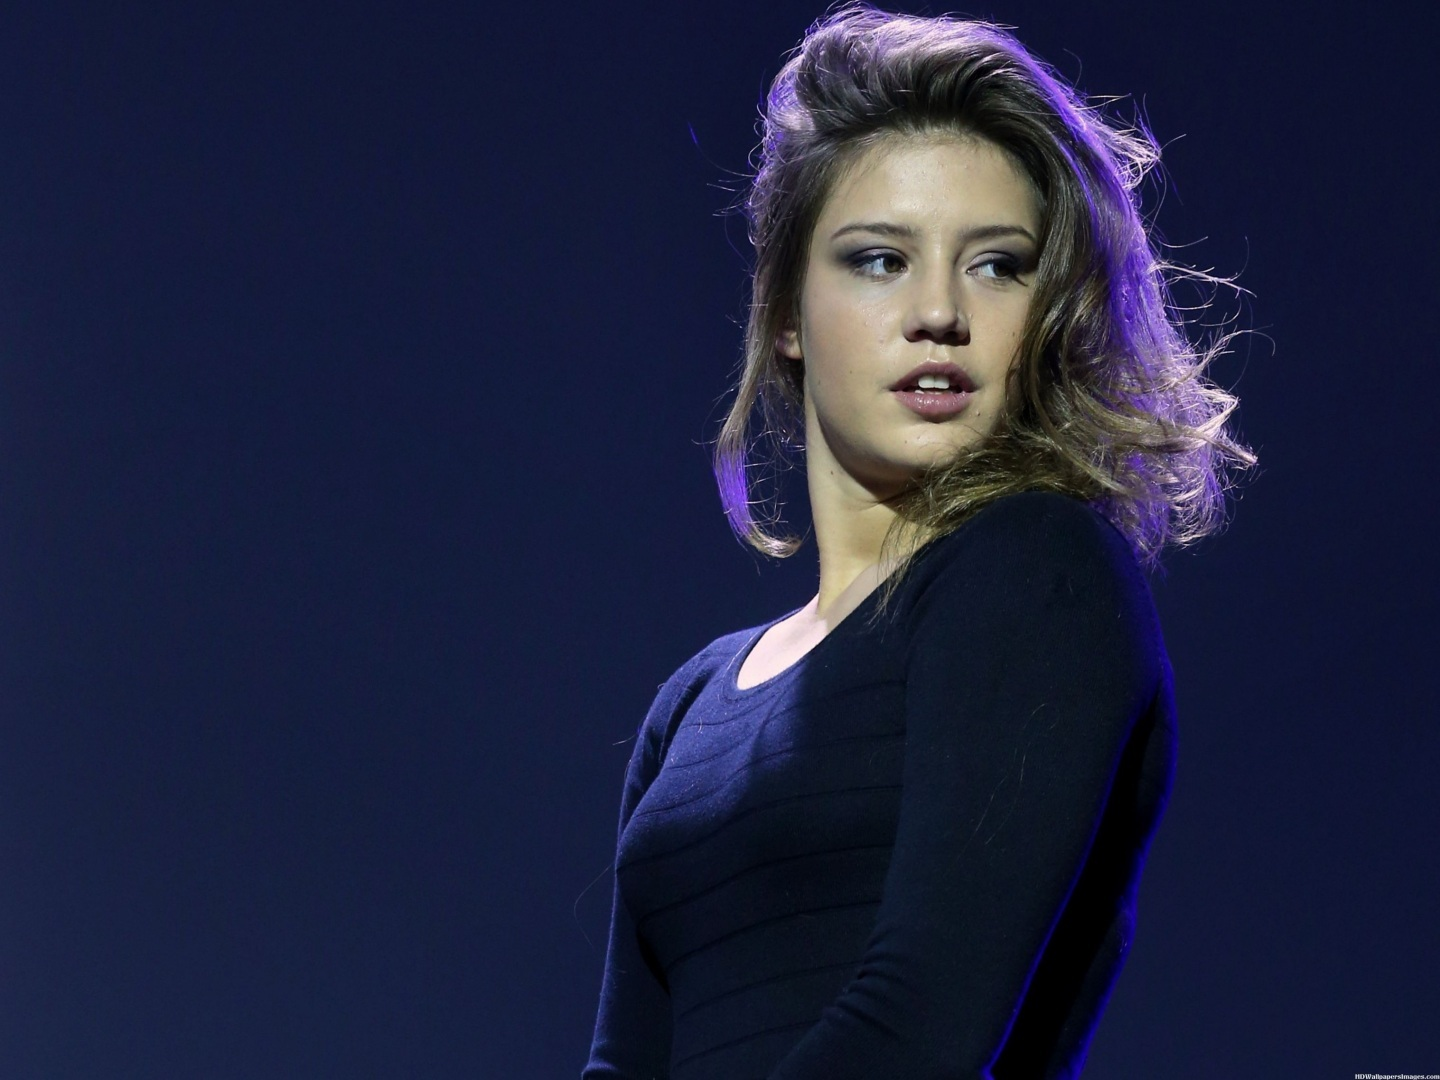 1440x1080 - Adele Exarchopoulos Wallpapers 17